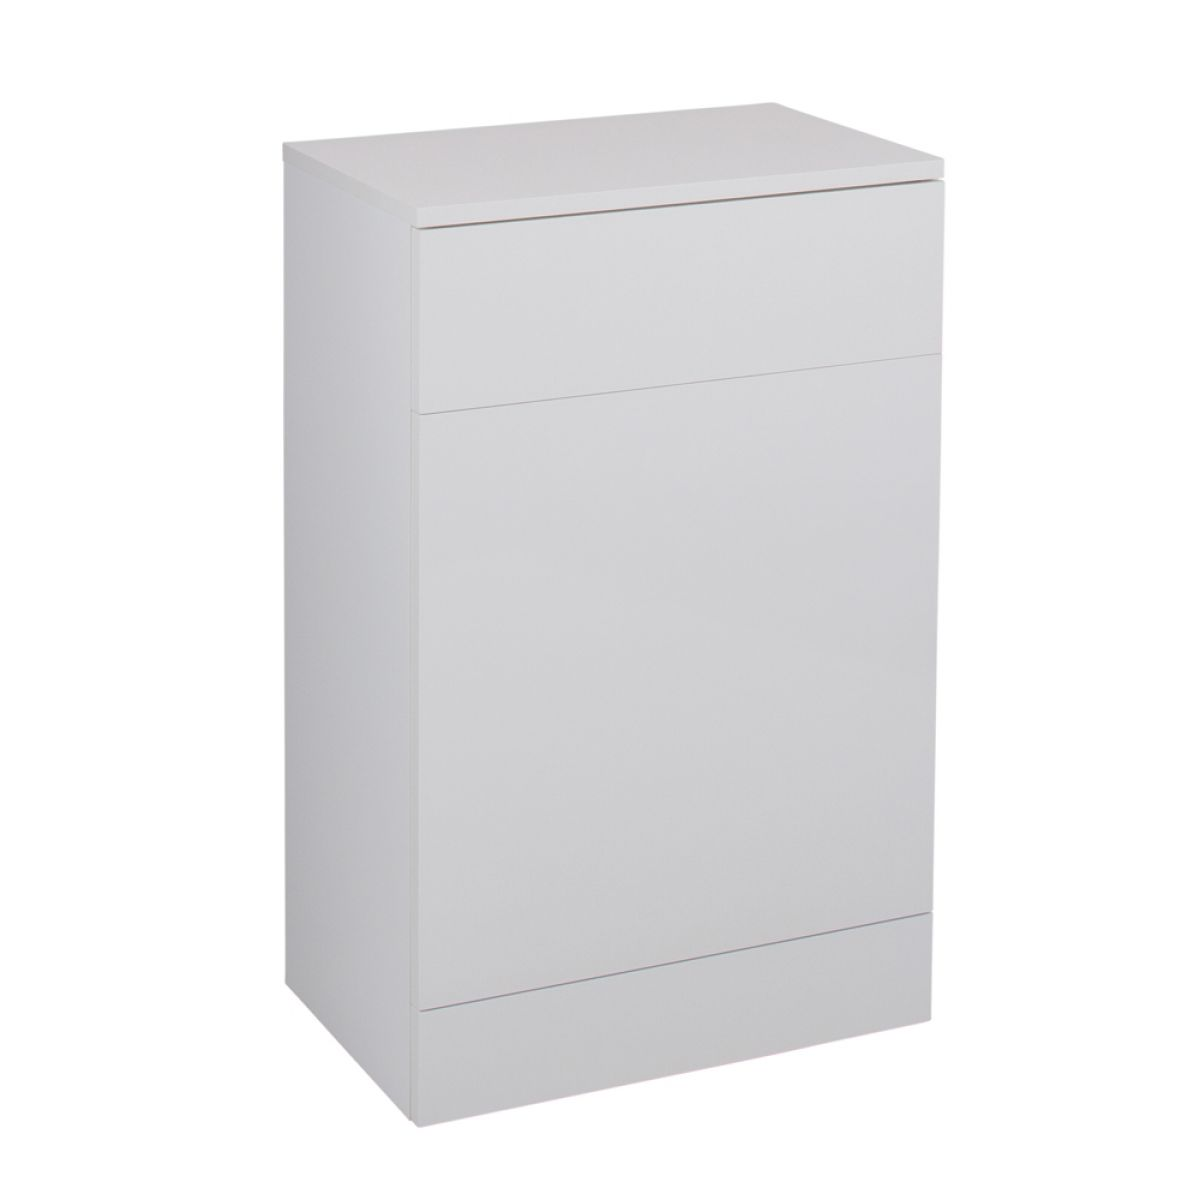 Cassellie Kass Gloss White WC Unit 600mm